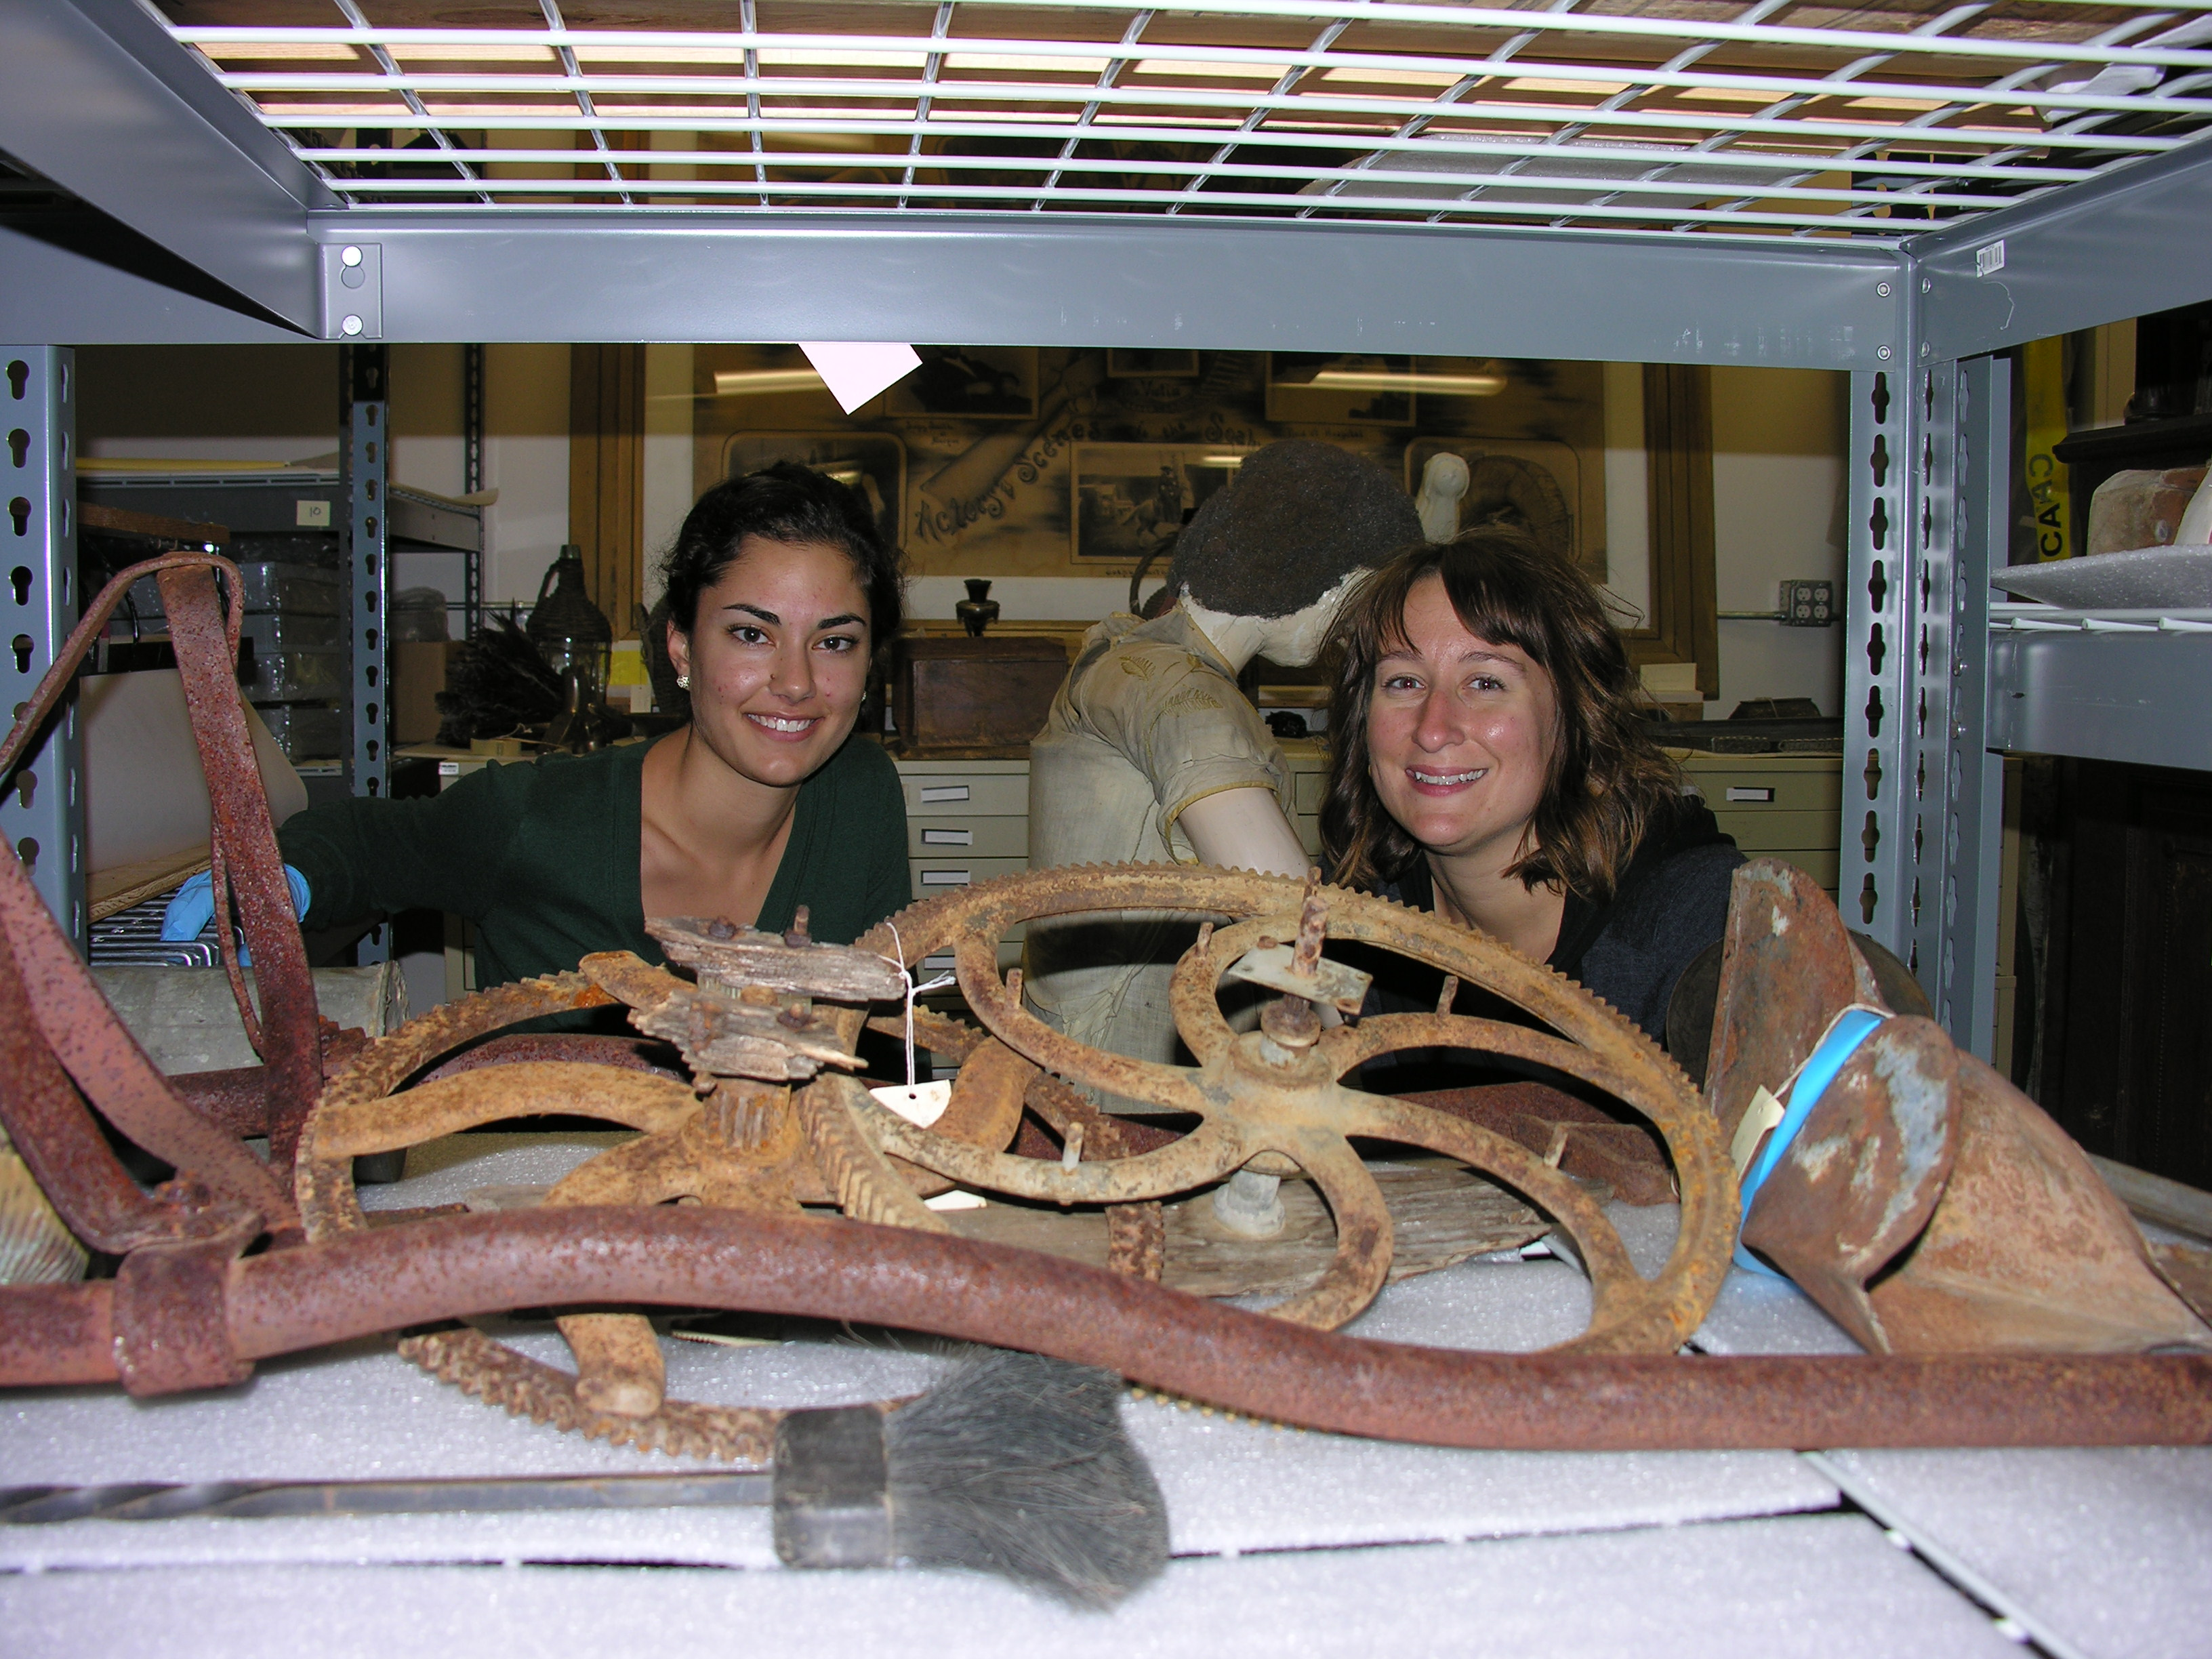 [Photo 5] Katie and I surrounded by artifacts in the Rapuzzi collection